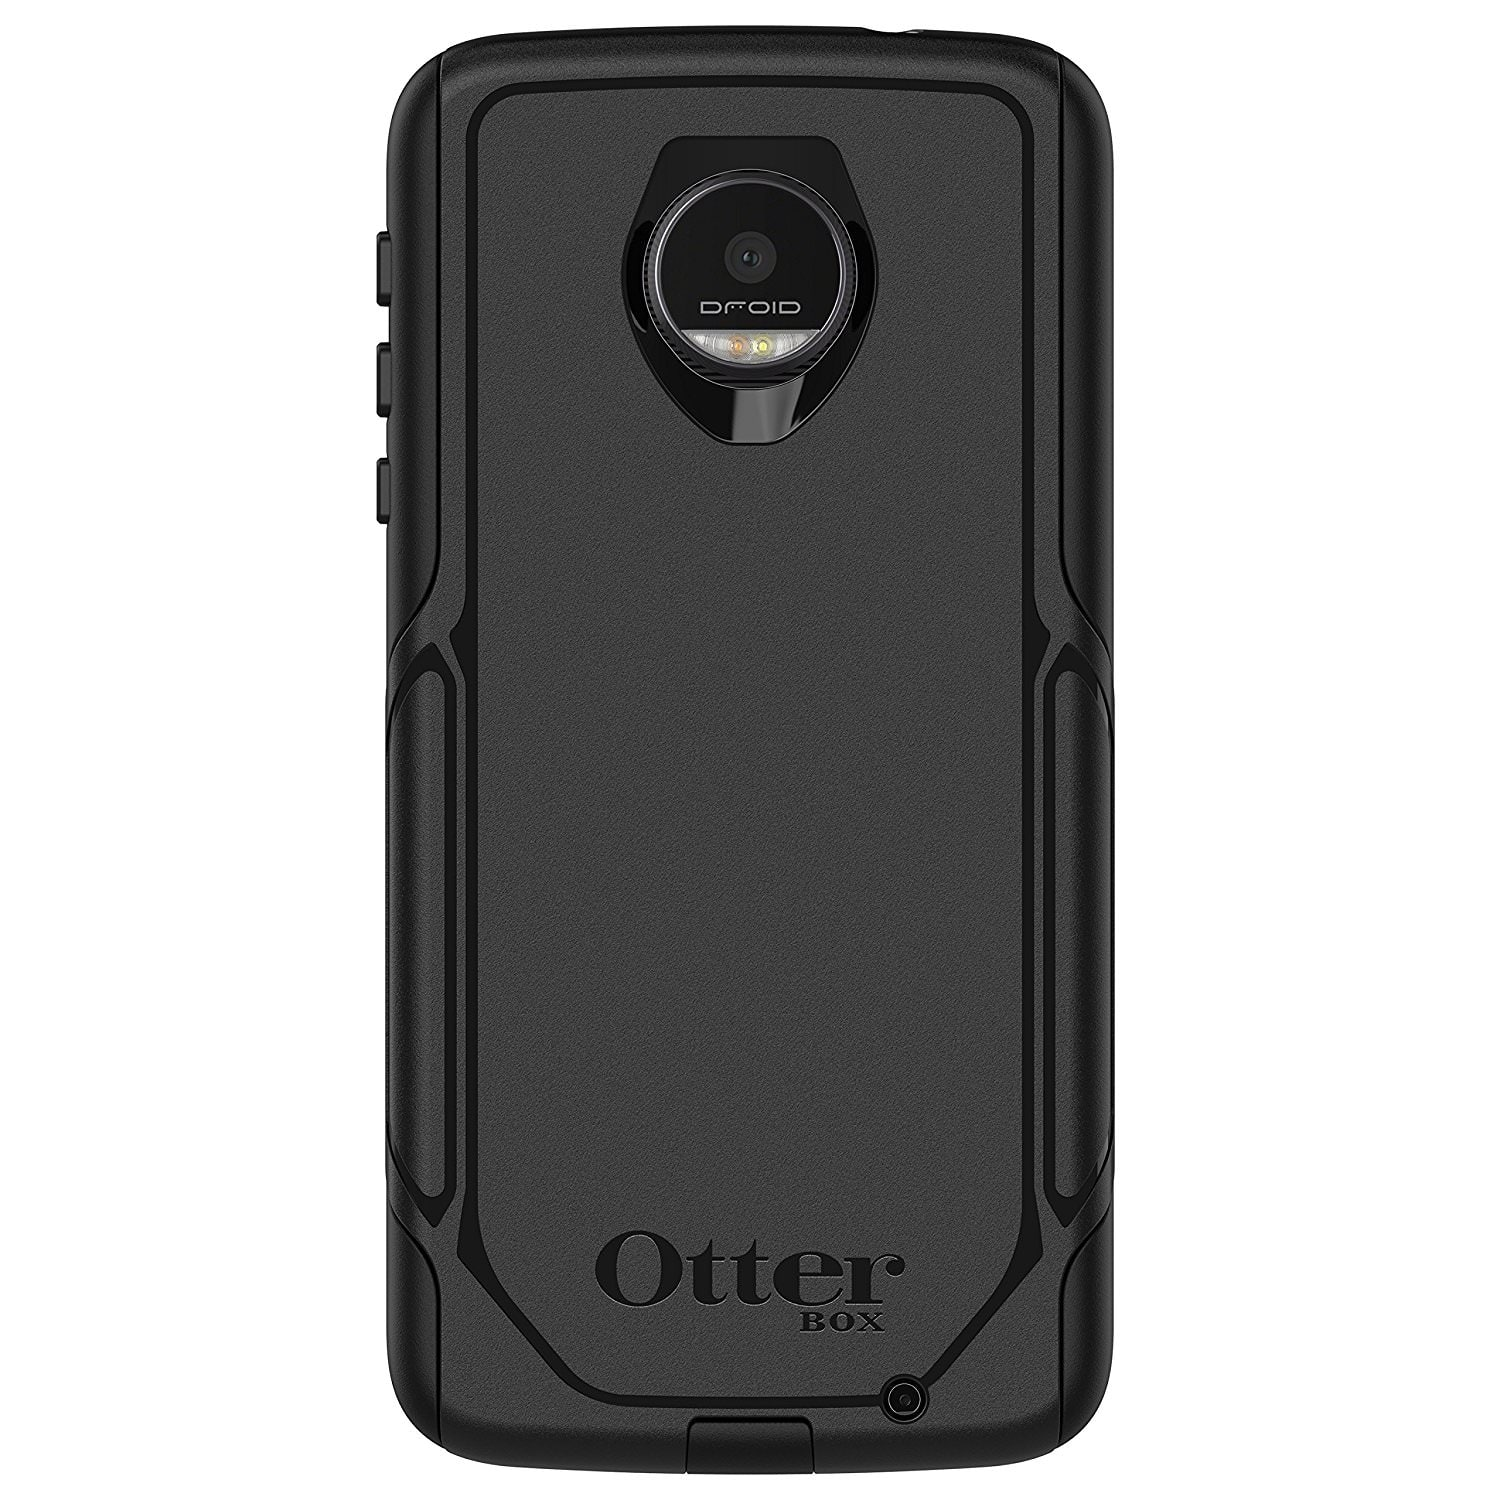 Amazon Warehouse: Otterbox Commuter Cases (Used - Like New): Moto Z $2.80, Galaxy S7 Edge $5.50, Galaxy S8+ $7.80 + FS w/ Prime or $25+